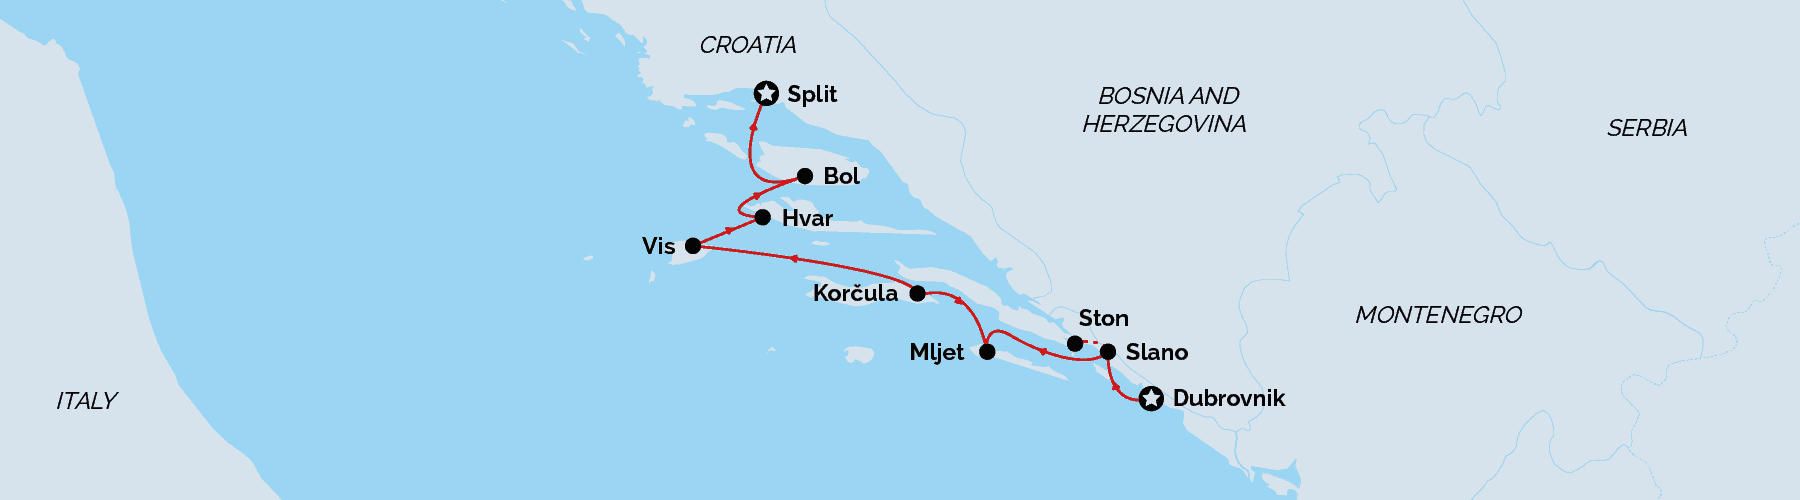 Cruise map, Subrovnik to Split deluxe